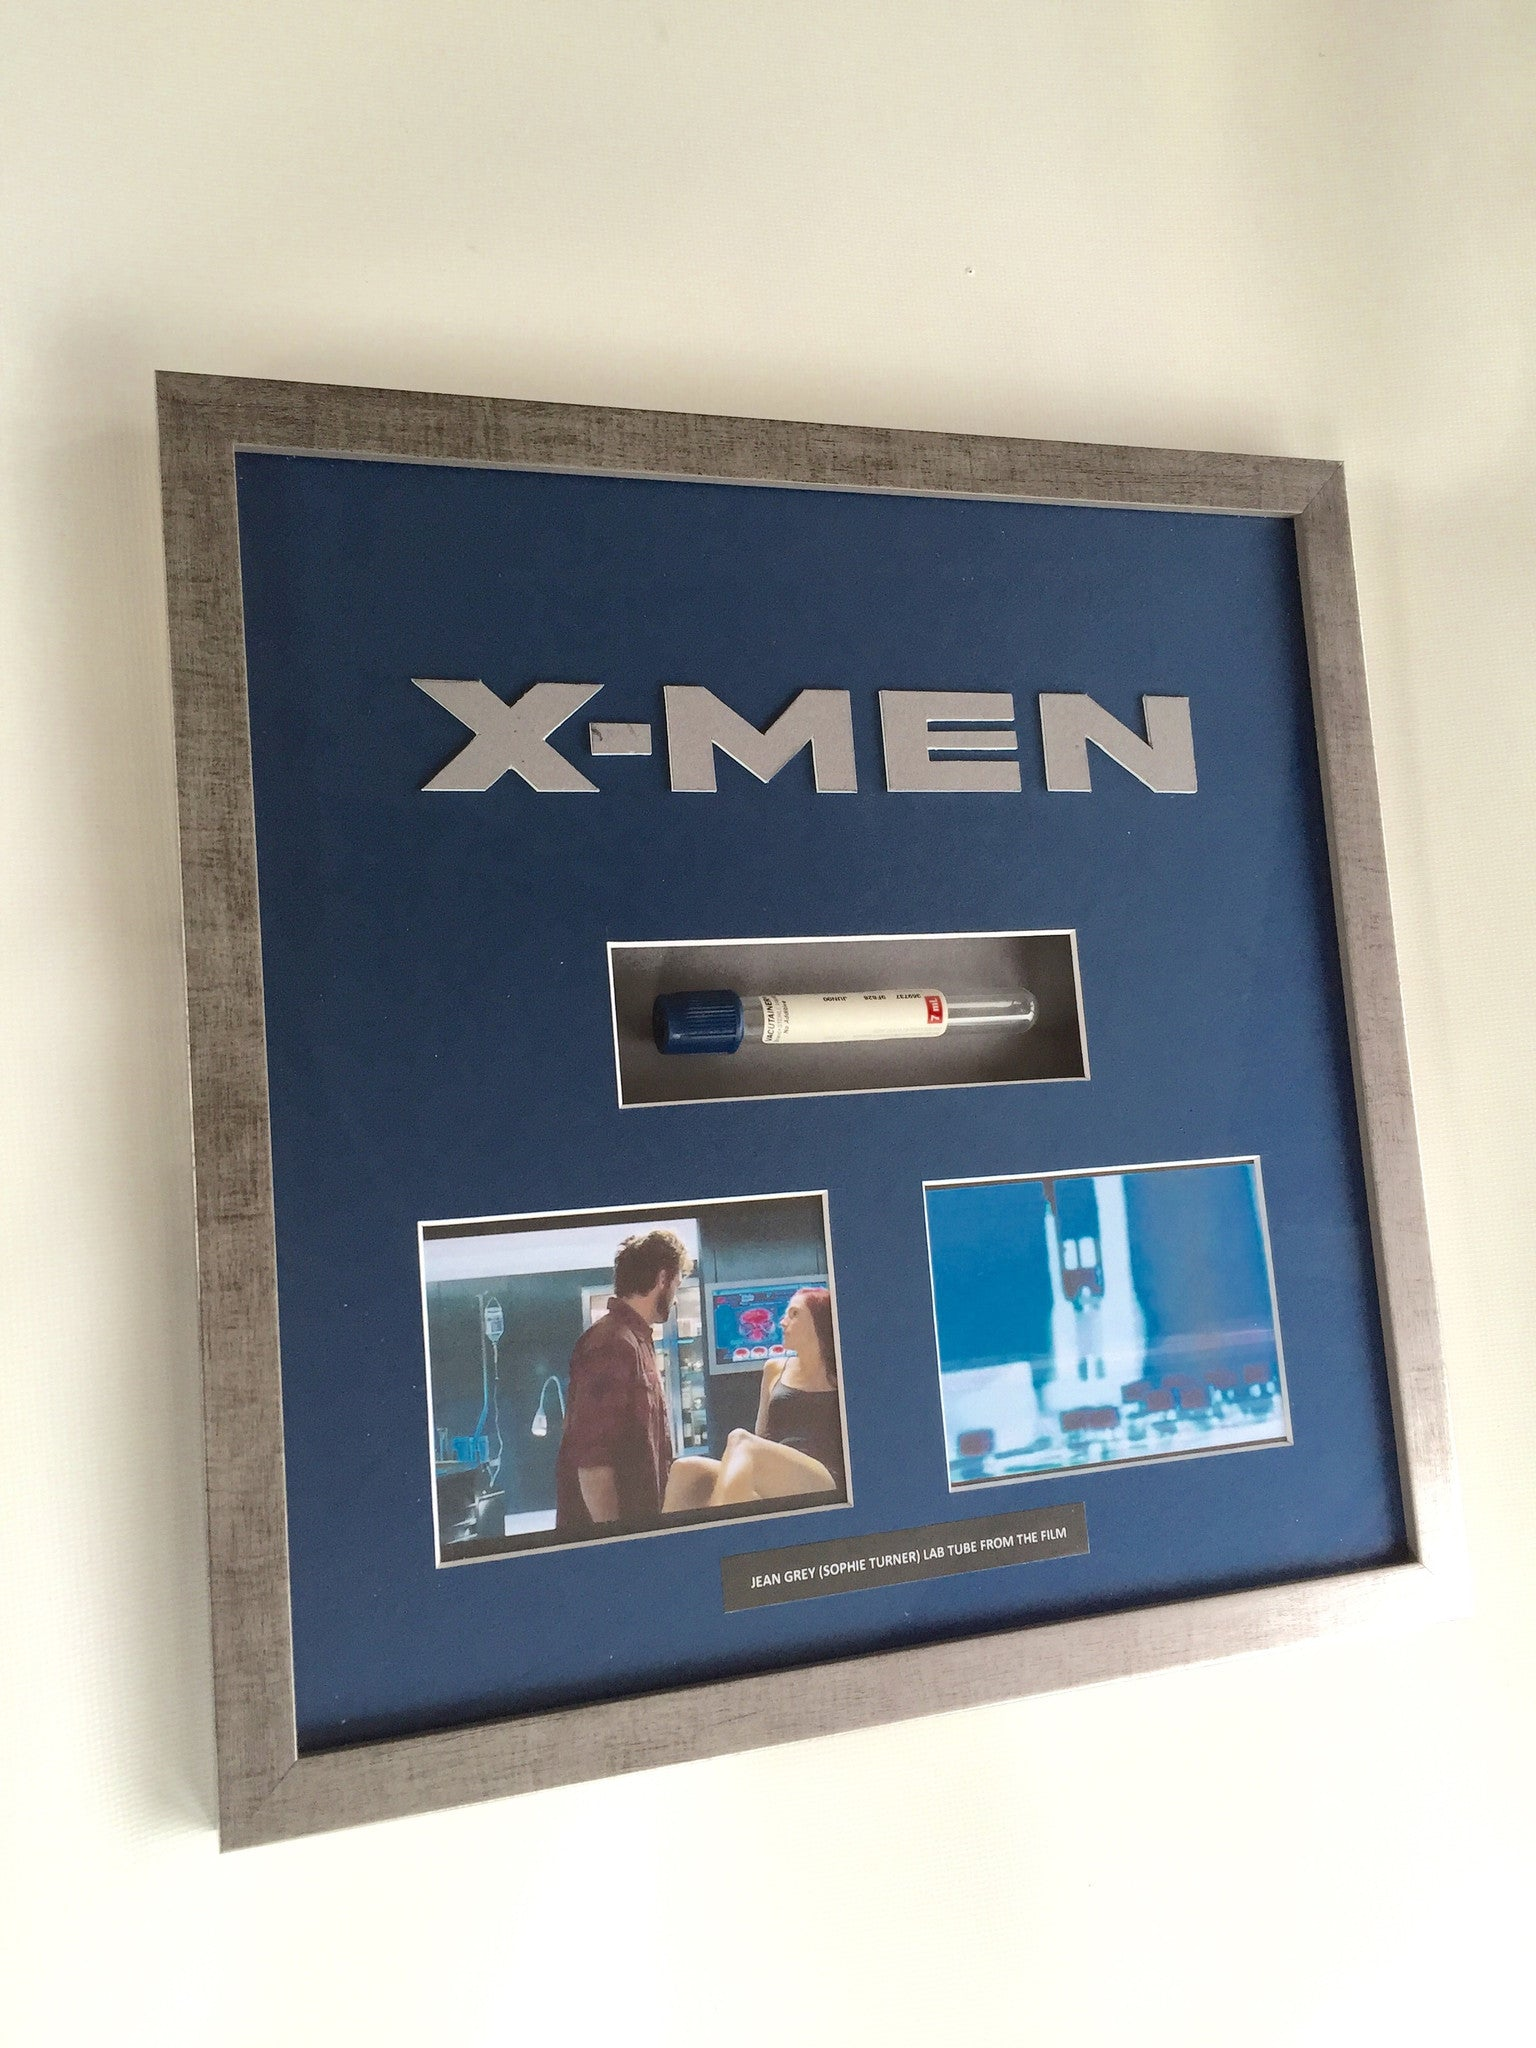 X-Men (2000) - Test Tube from Jean Grey's Lab (SOLD)